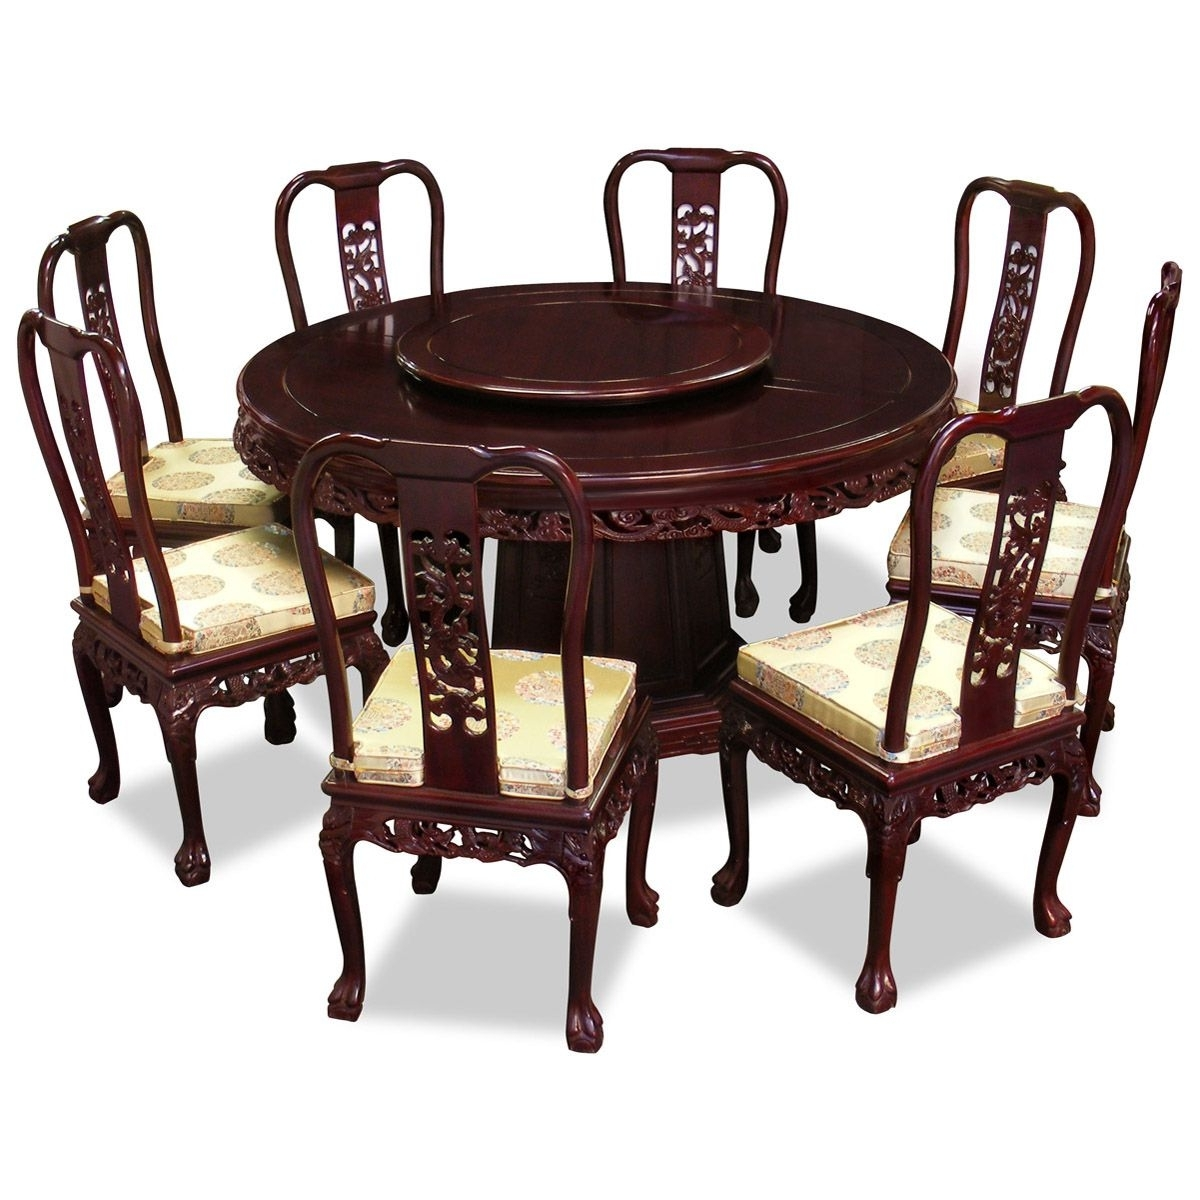 Dining Tables With 8 Chairs Inside Favorite 60In Rosewood Imperial Dragon Design Round Dining Table With 8 (Gallery 22 of 25)